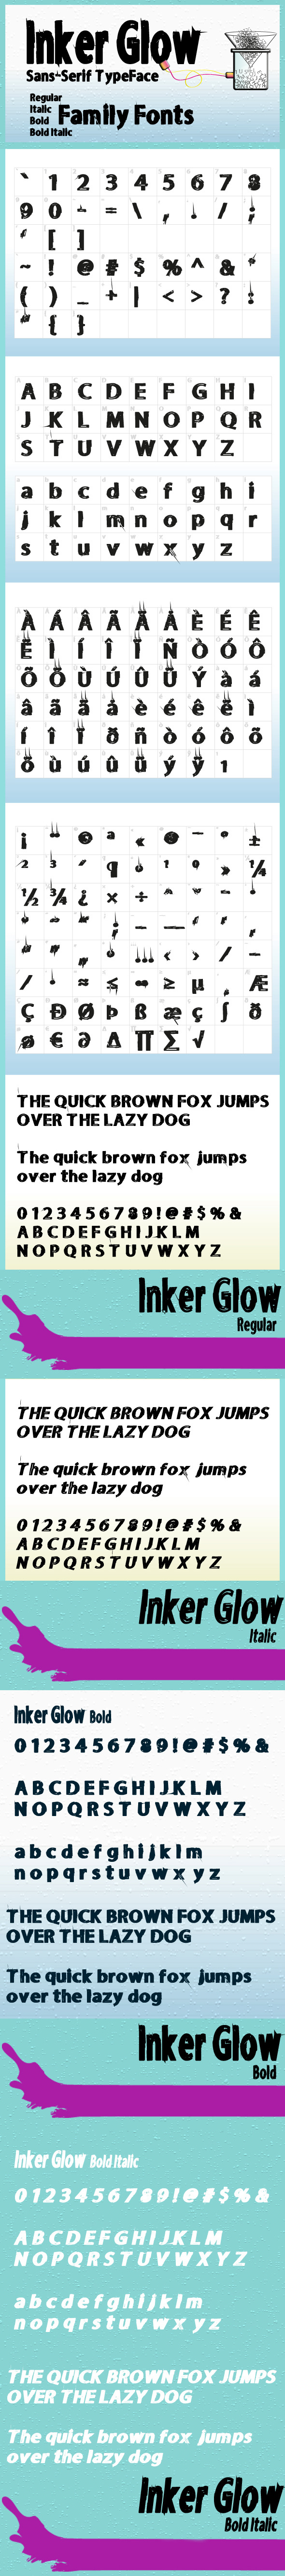 GraphicRiver Inker Glow Family Fonts 8535397